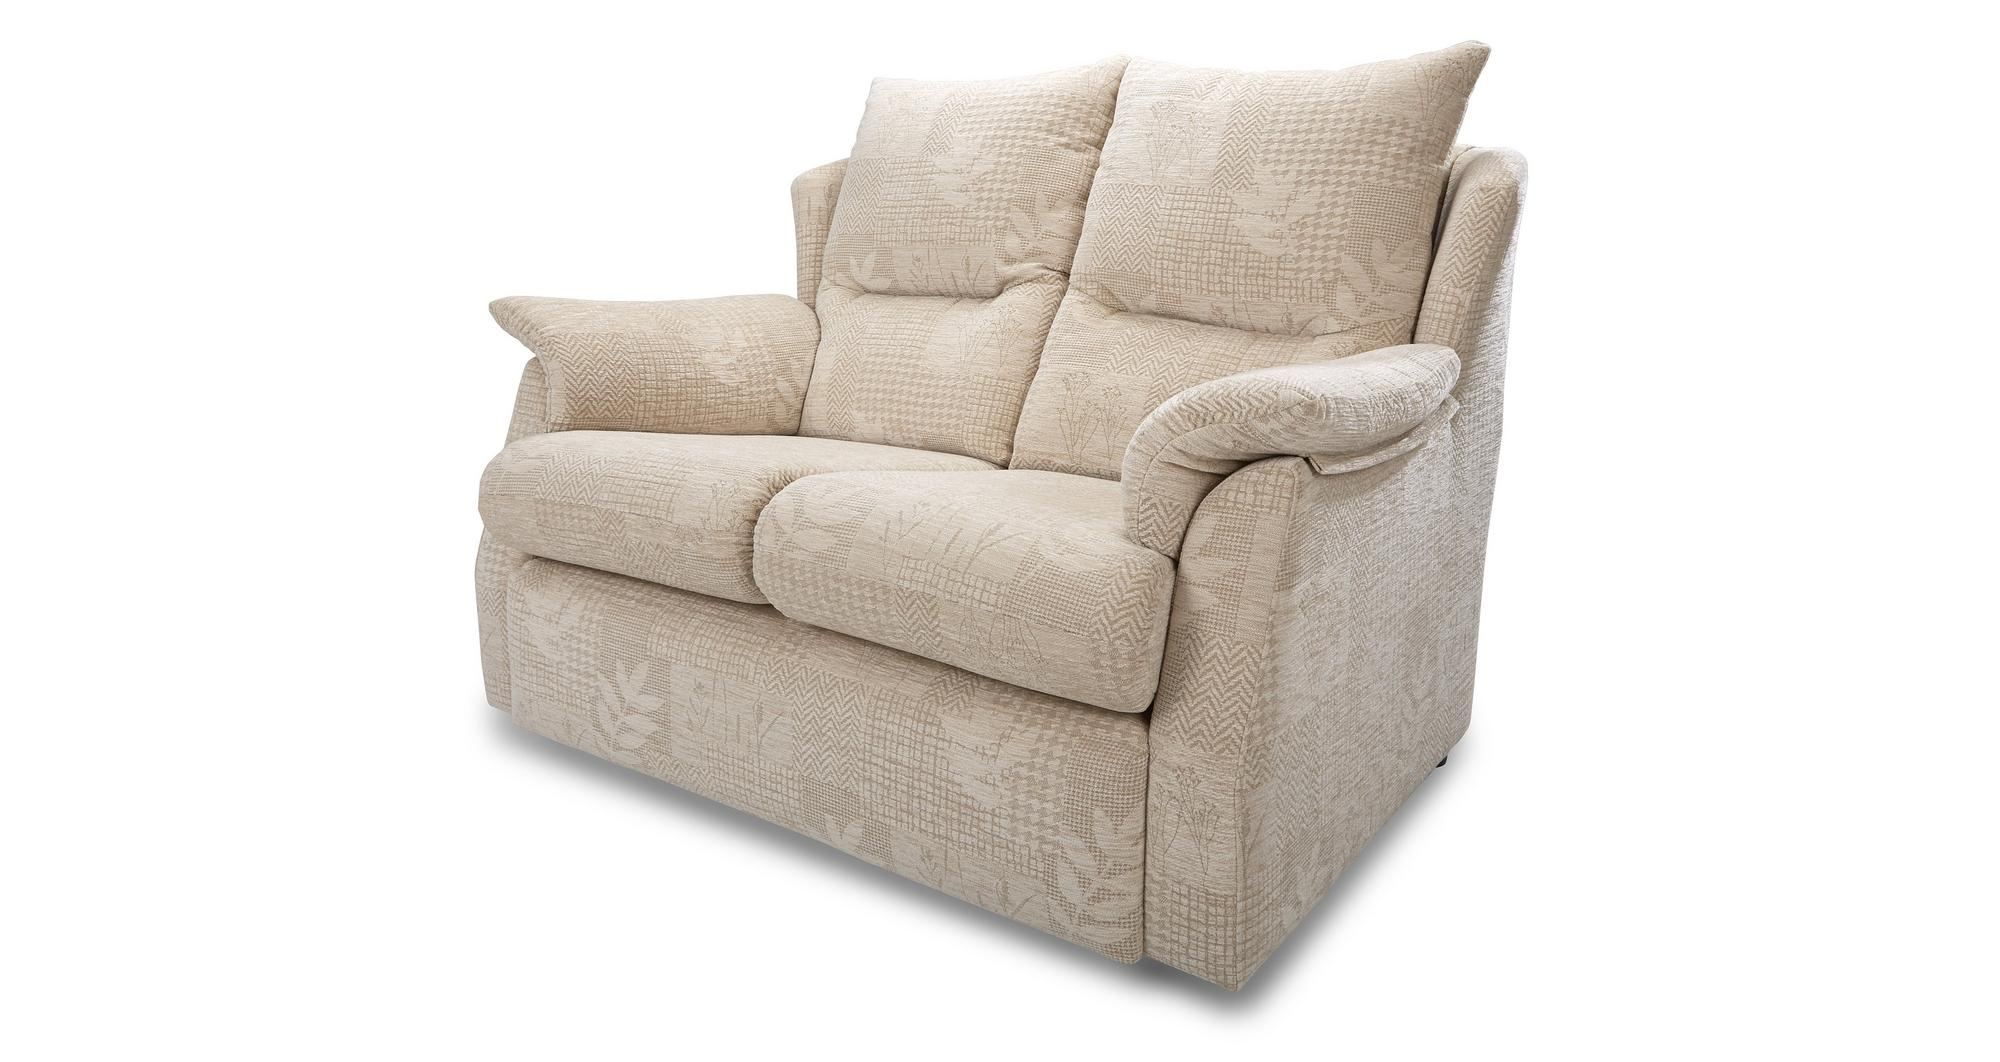 Dfs stow cream fabric small 2 seater sofa and manual for Small cream sofa